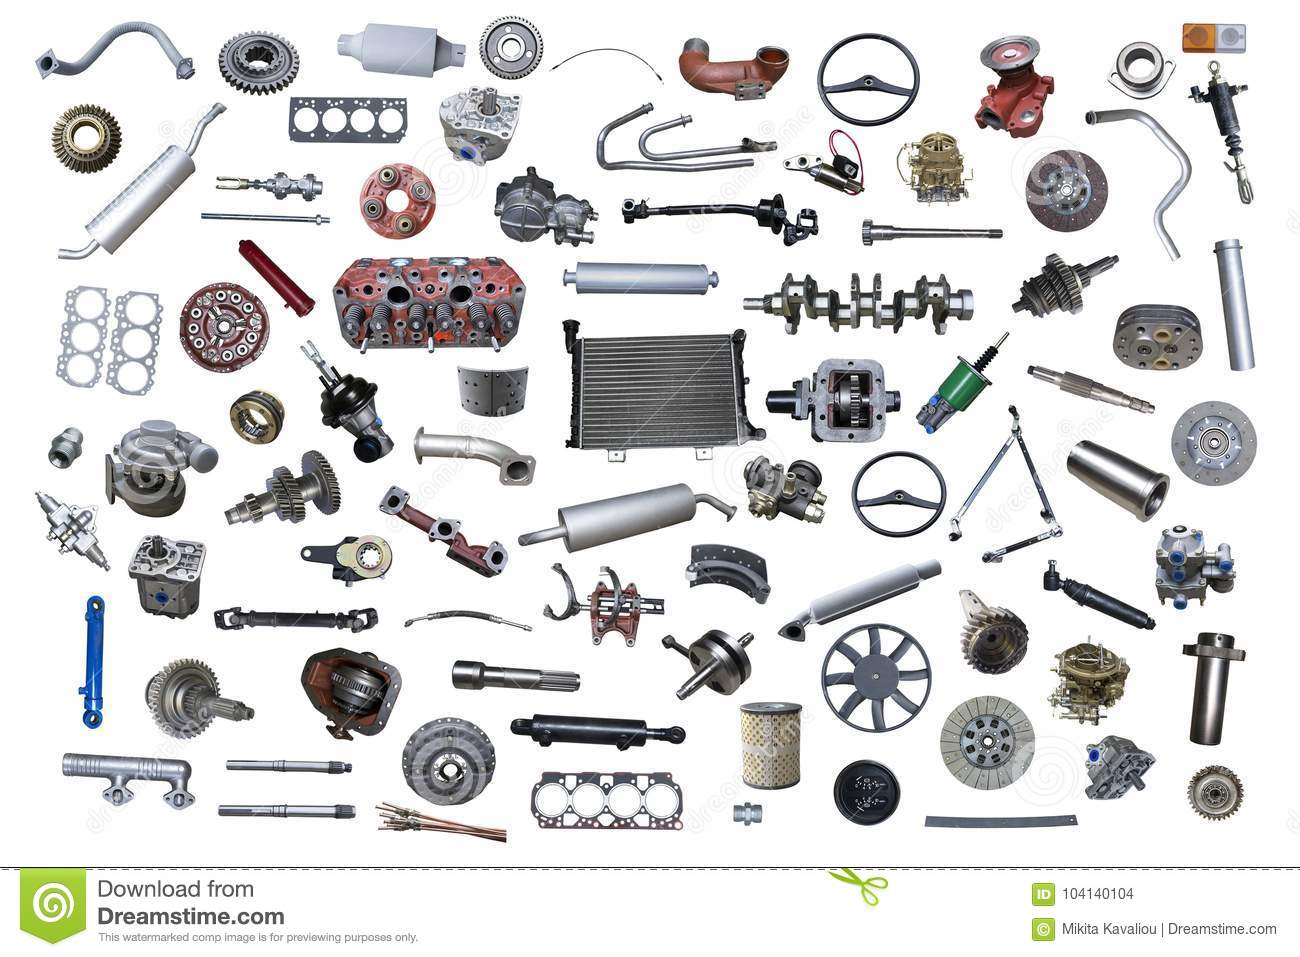 New Car Parts : Lot of new auto spare stock photo image tool motor